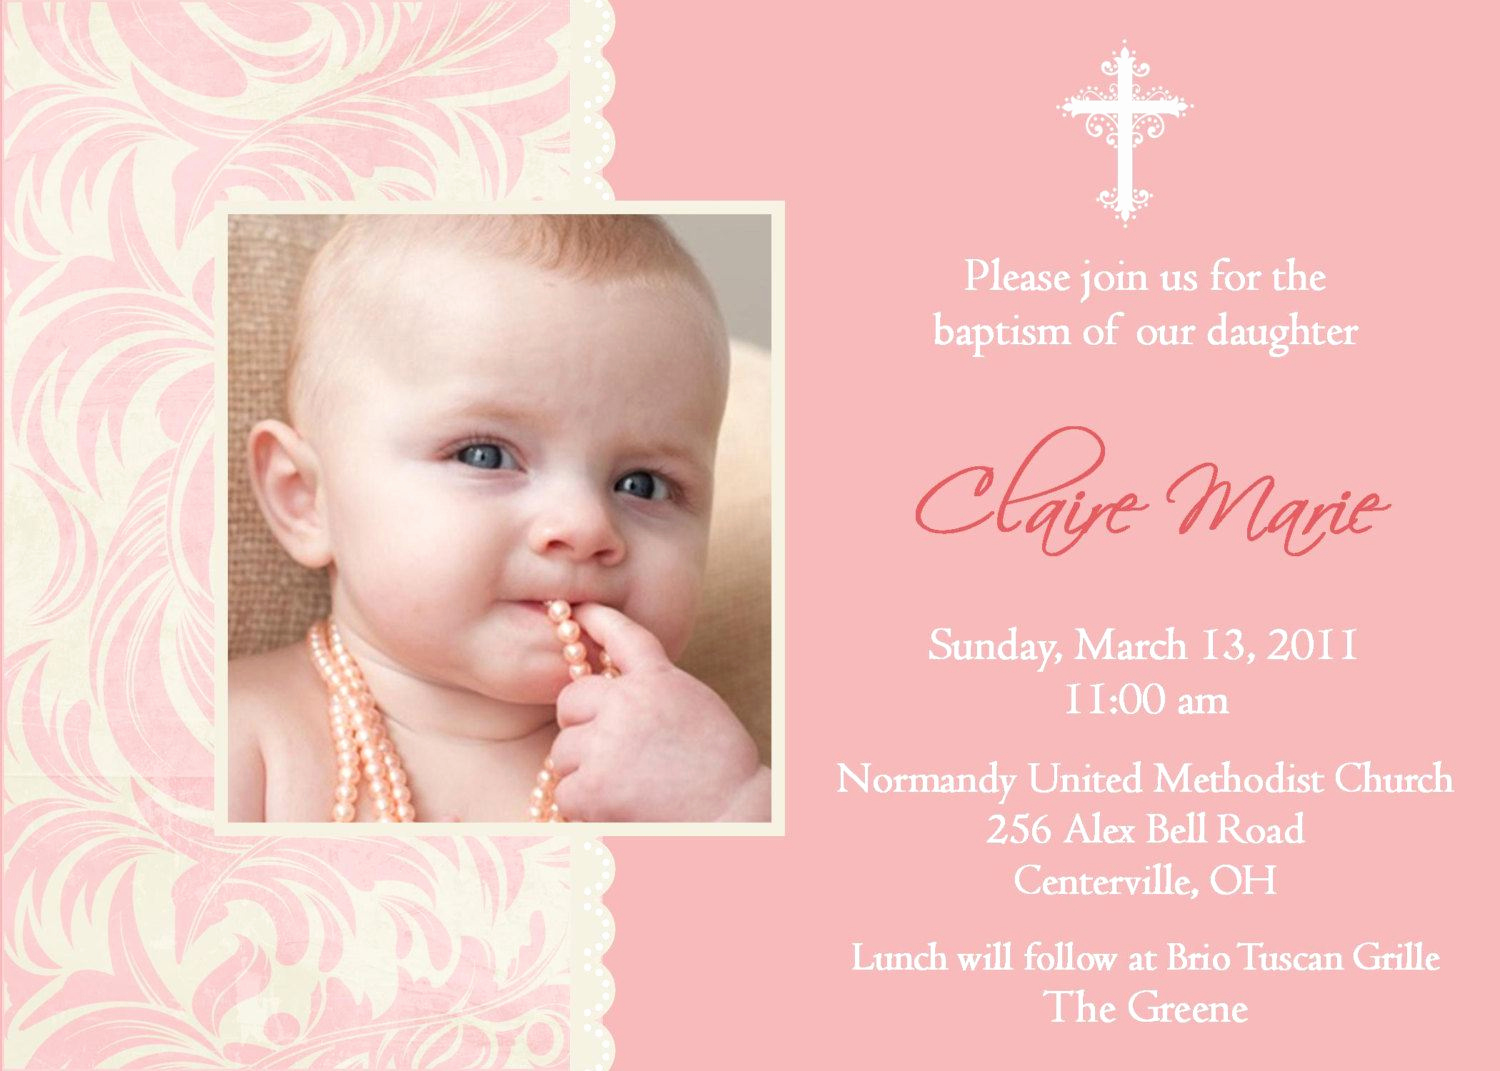 Baby Dedication Invitation Wording Awesome Baptism Invitations for Girl Christening Invitation